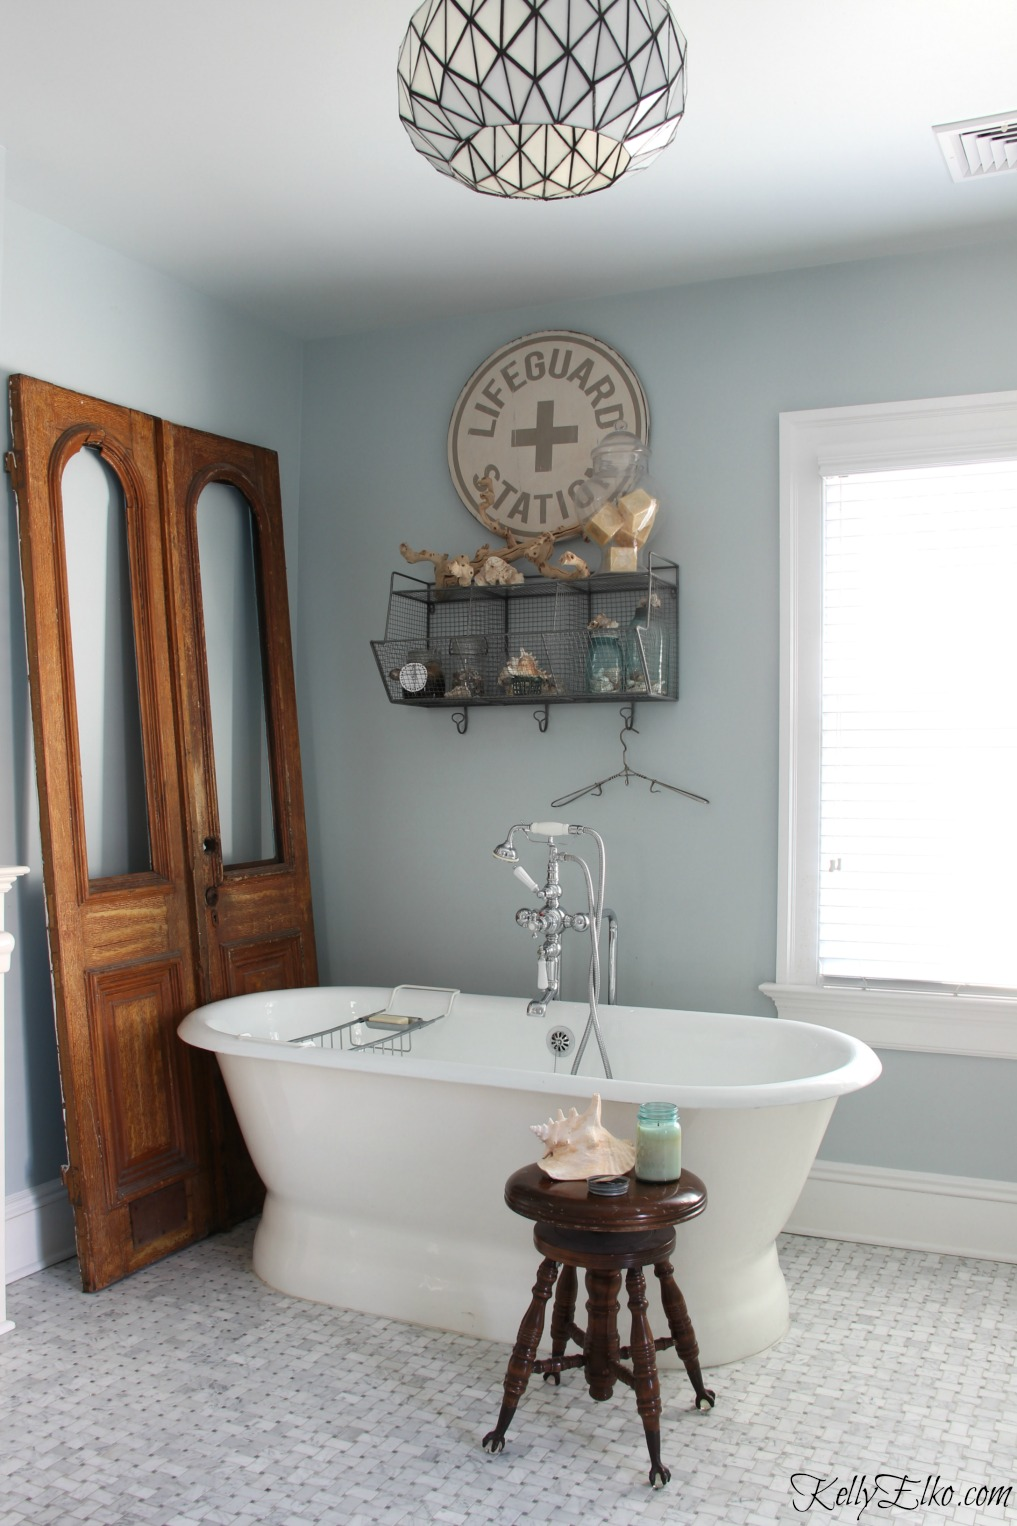 Love this master bathroom with free standing tub and marble tile - the antique doors add warmth and character kellyelko.com